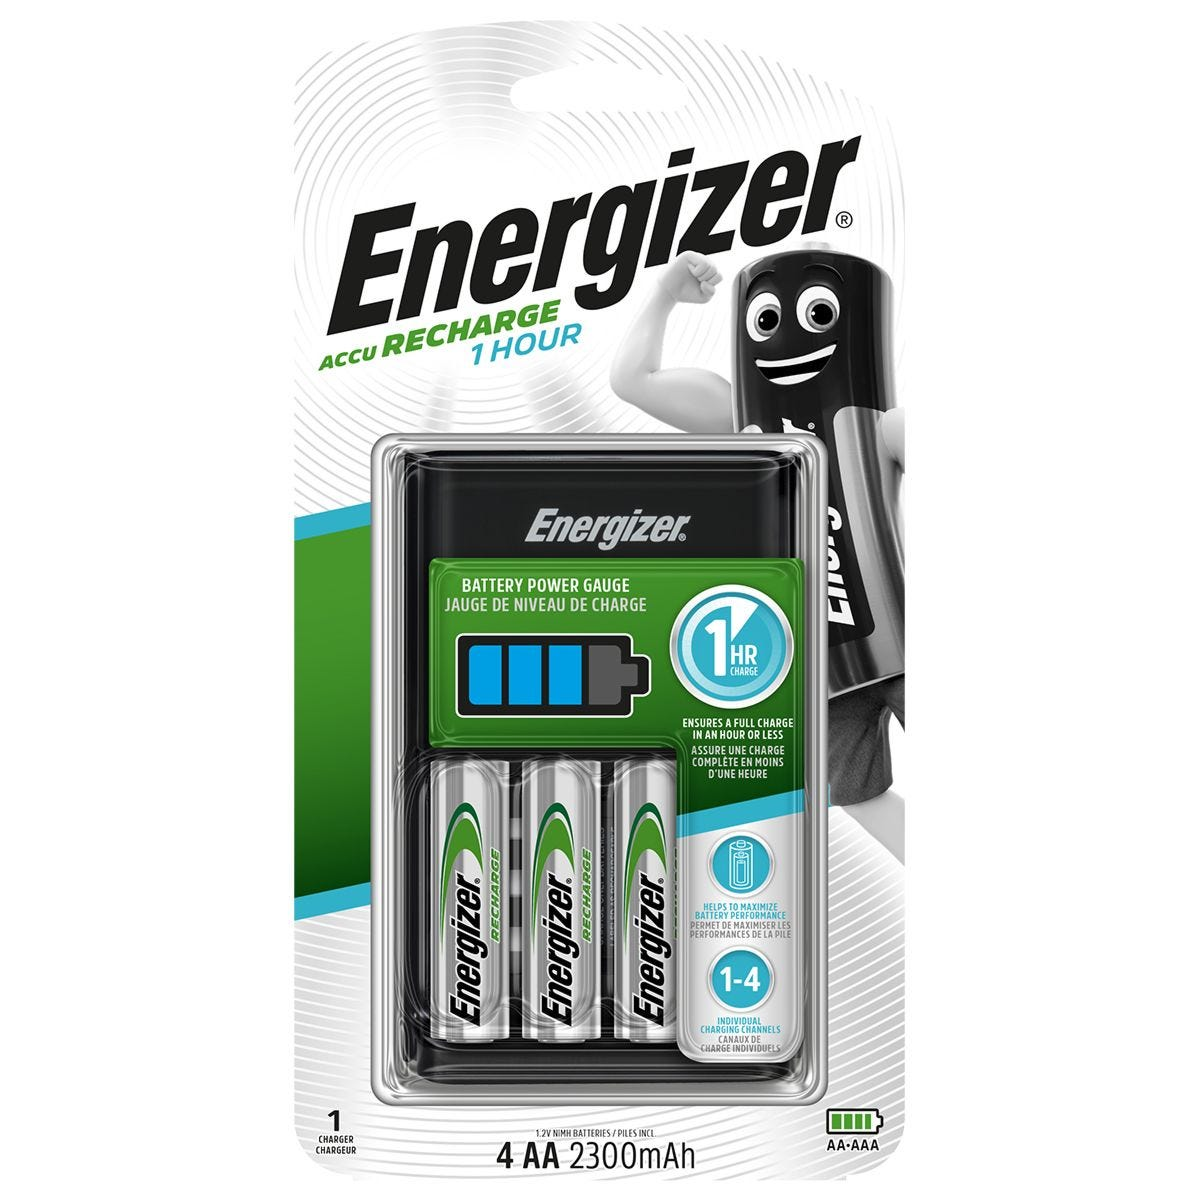 Energizer 1 Hour Rapid Charger Kit with 4 AA Rechargeable Batteries